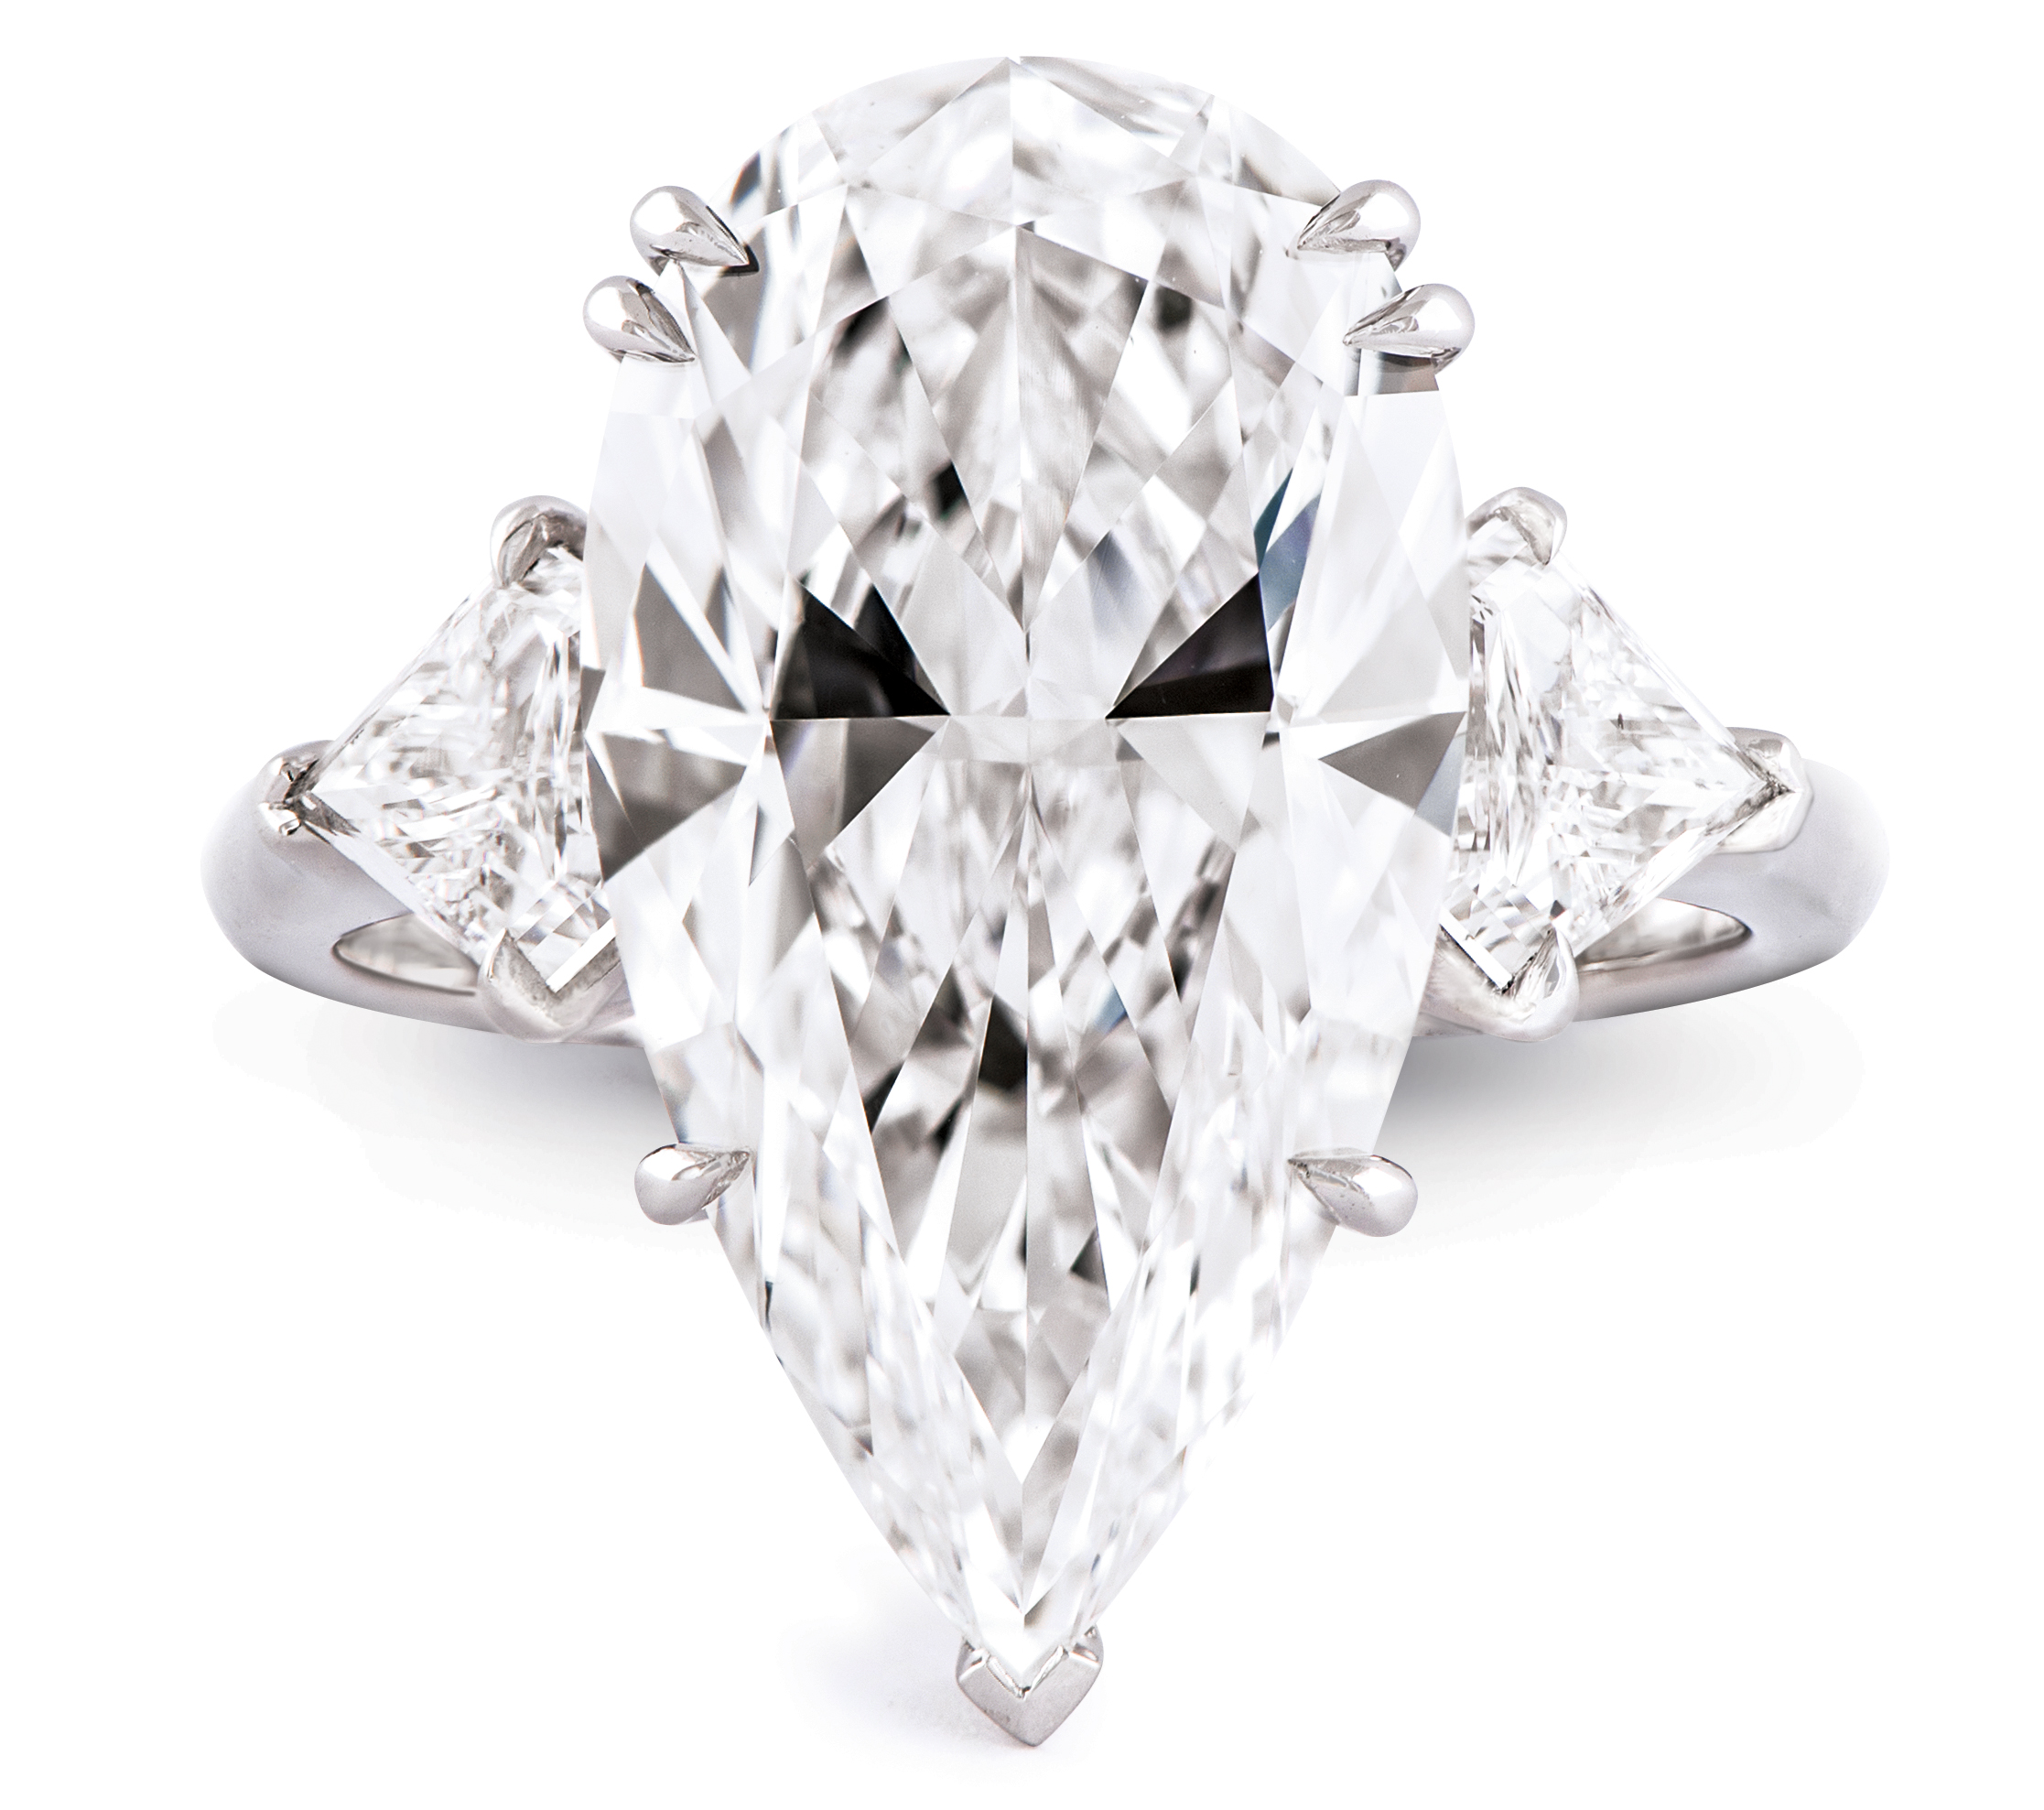 pin french wedding cut diamond a cushion august vintage style rings cvb platinum solitaire center with three natural in giselle sides stone